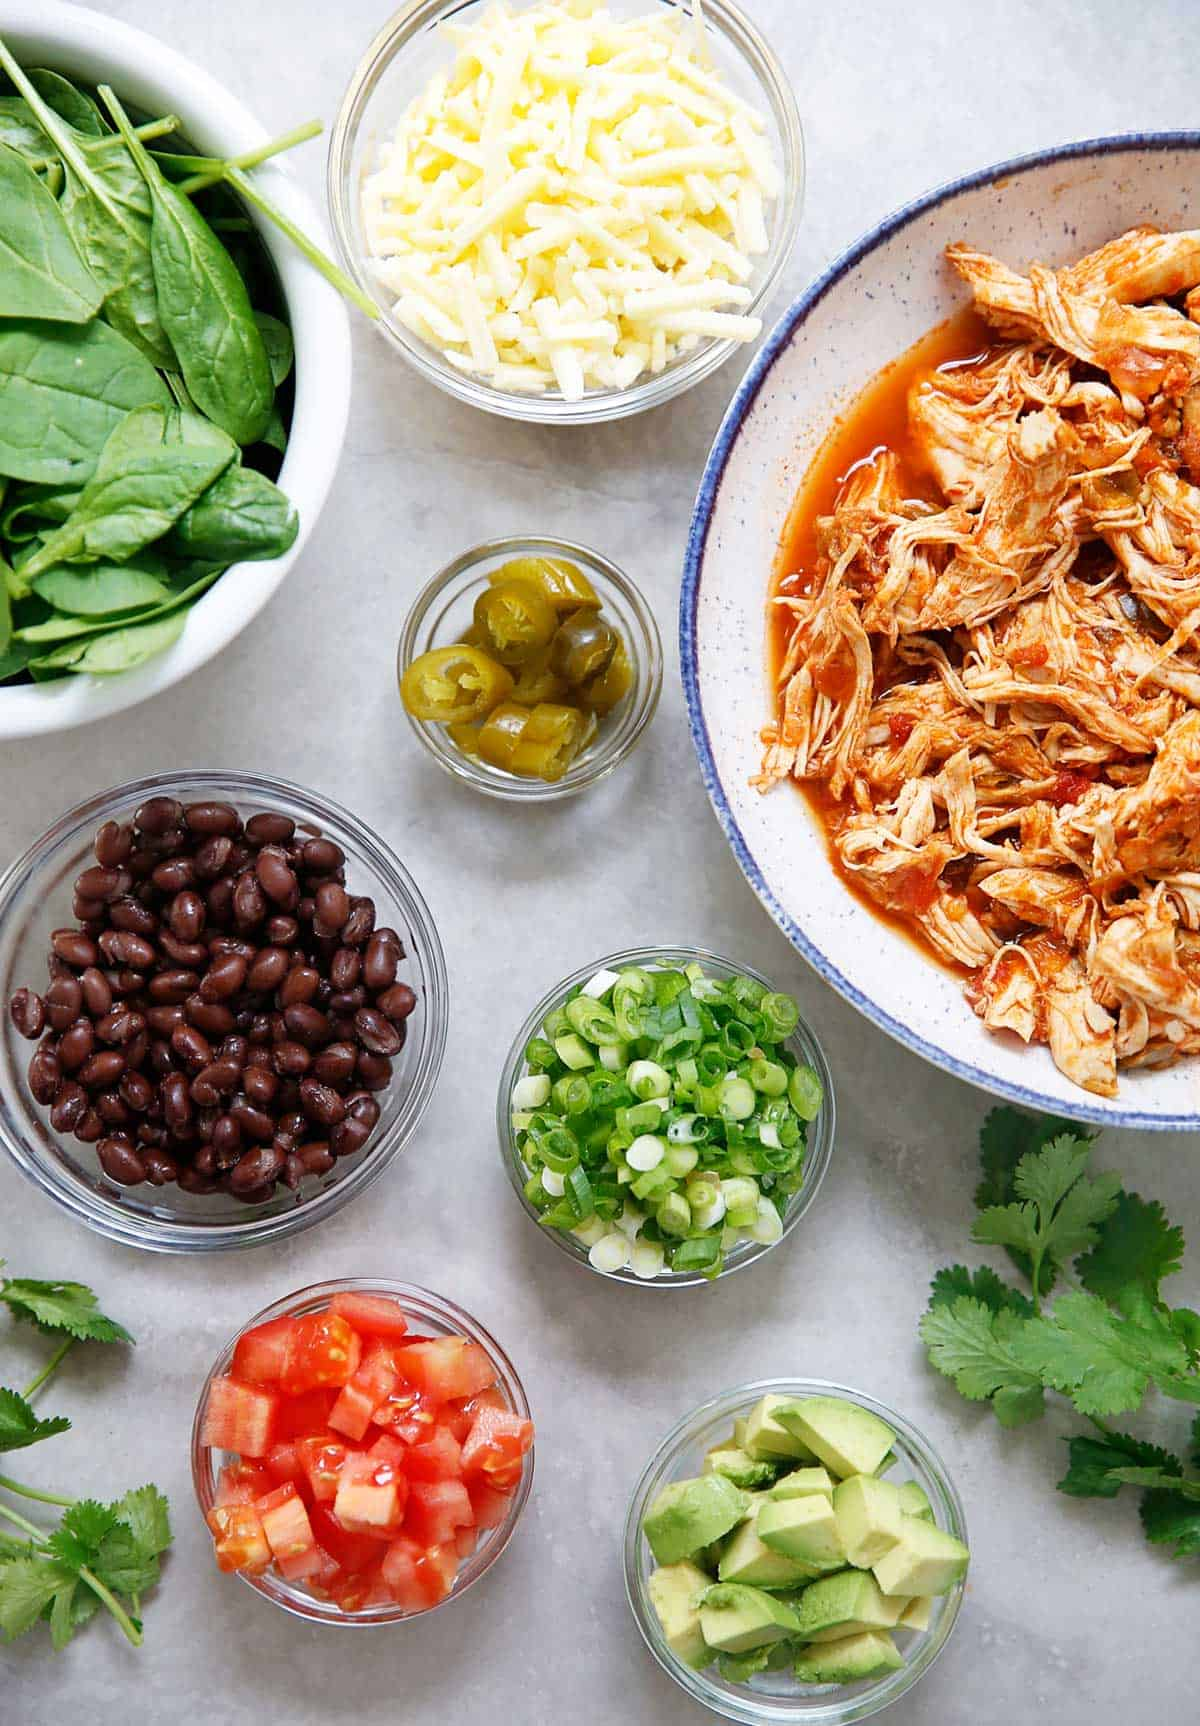 Instant Pot Shredded Salsa Chicken - Lexi's Clean Kitchen